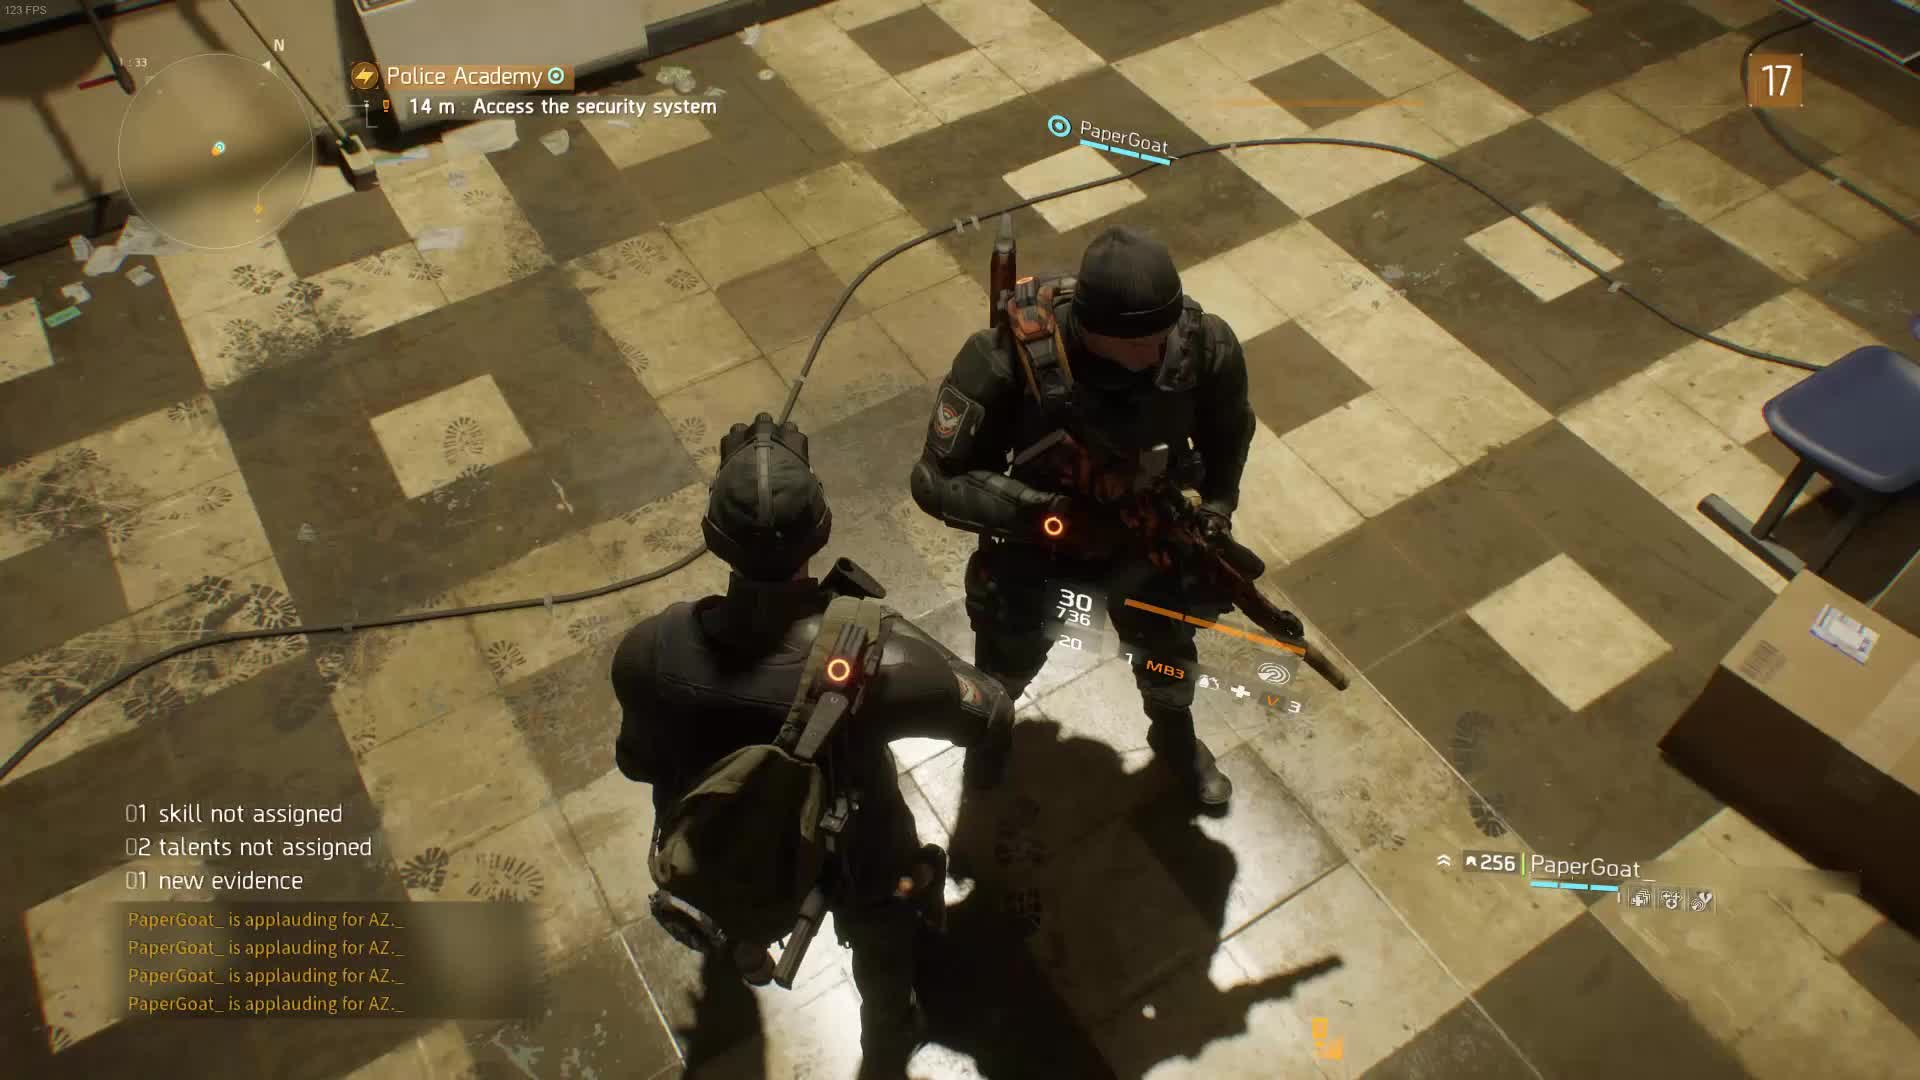 thedivision, A round of applause GIFs